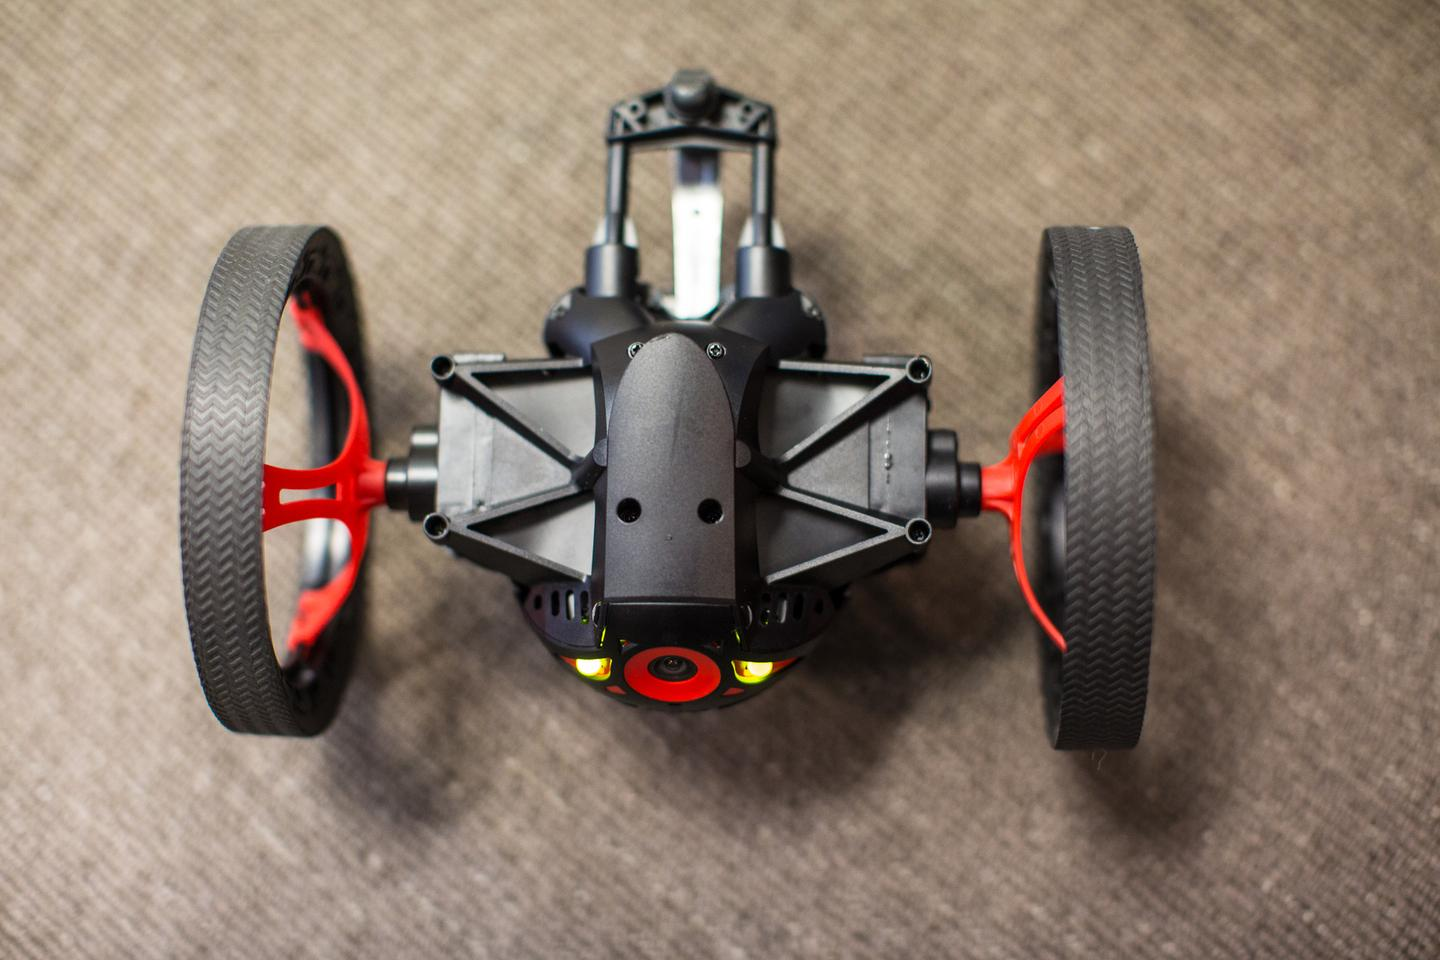 The Jumping Sumo's secret weapon is a spring system built into its backside (Photo Gizmag/Nick Lavars)